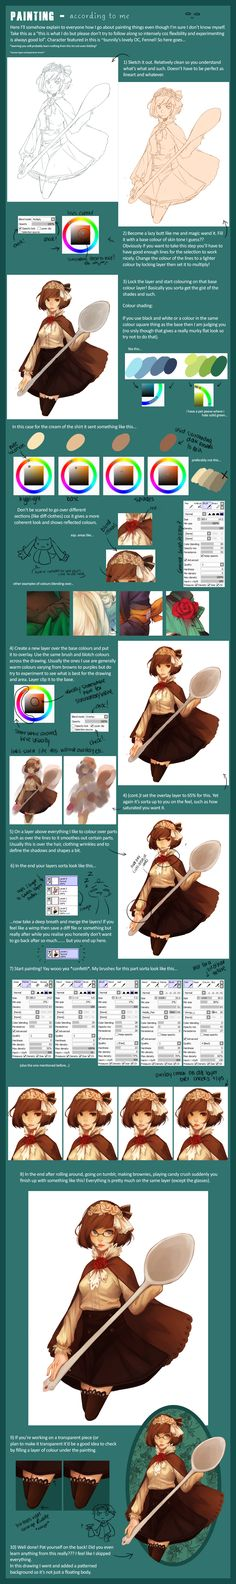 http://fc01.deviantart.net/fs71/f/2013/145/f/4/how_i_tend_to_paint_by_sangcoon-d66hajv.png ✤ || CHARACTER DESIGN REFERENCES | キャラクターデザイン | çizgi film • Find more at https://www.facebook.com/CharacterDesignReferences & http://www.pinterest.com/characterdesigh if you're looking for: #color #theory #contrast #animation #how #to #draw #paint #drawing #tutorial #lesson #balance #sketch #colors #digital #painting #process #line #art #tips || ✤